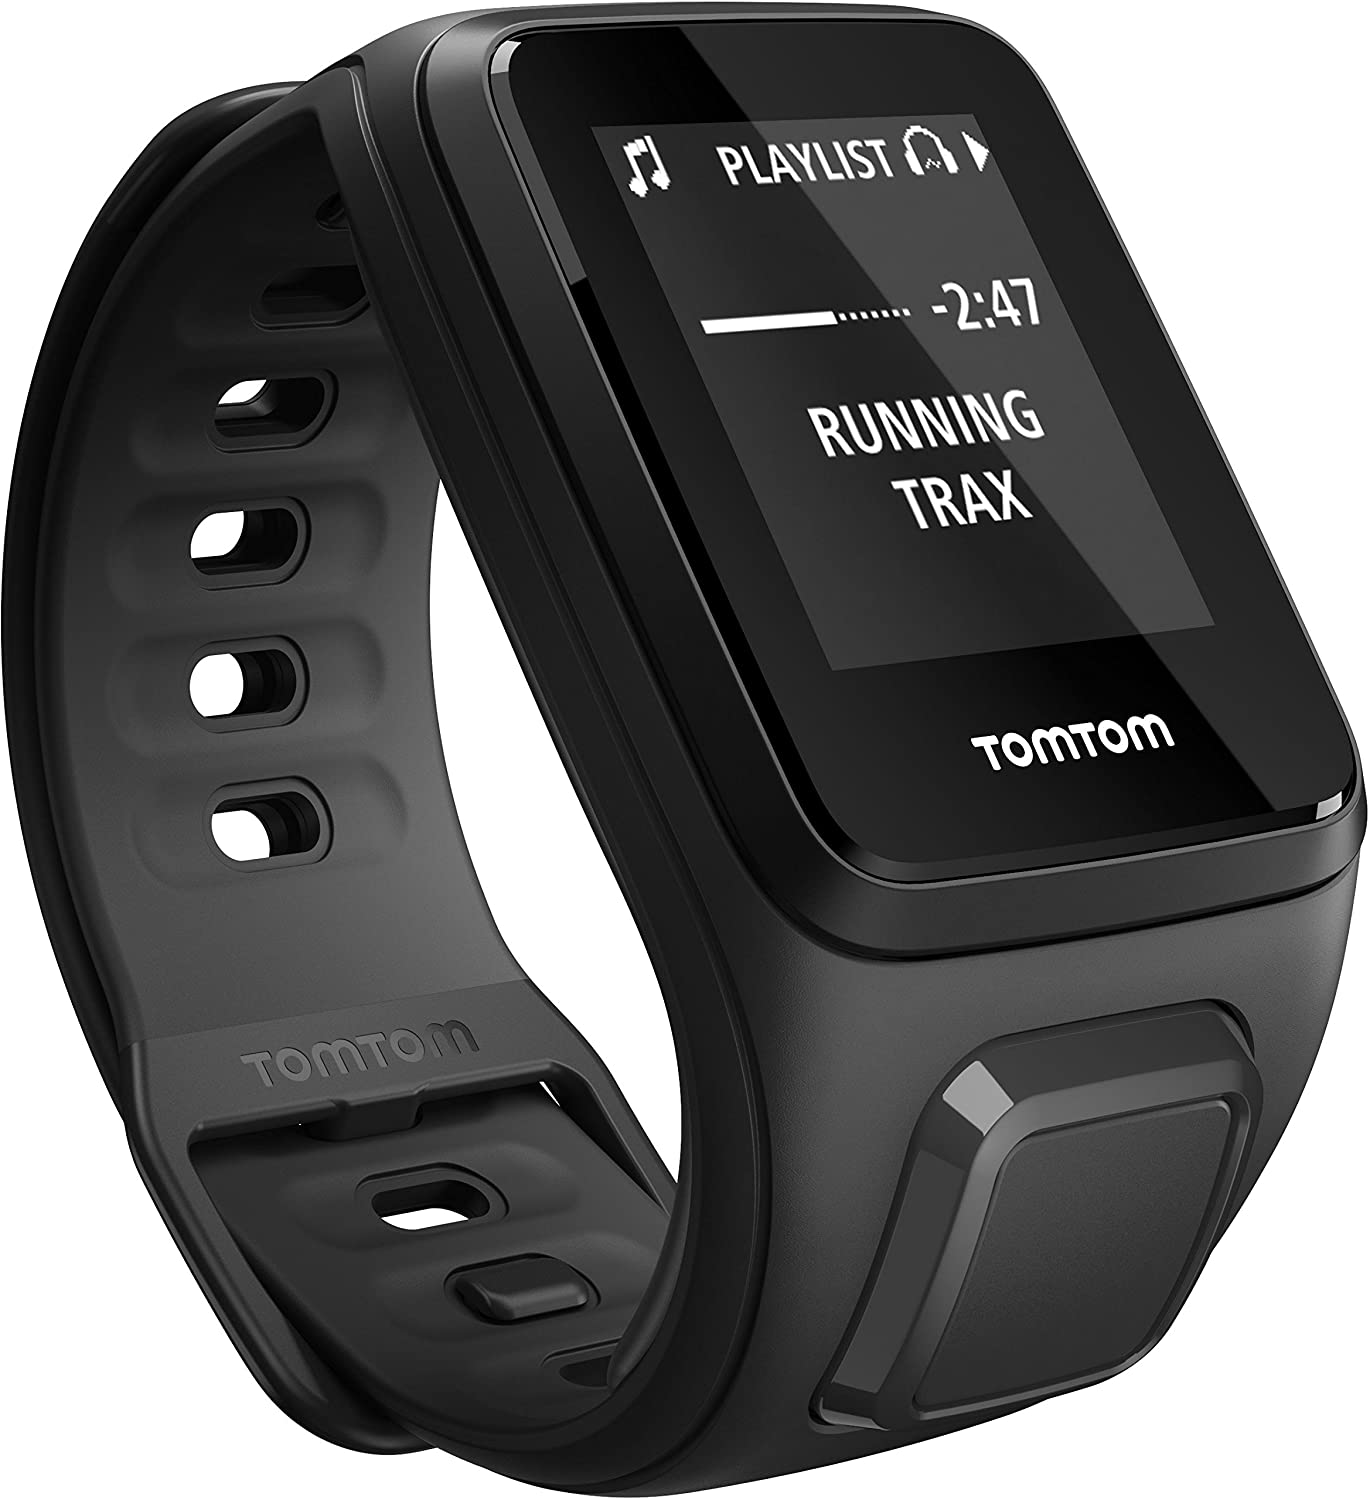 TomTom Uhr amazon